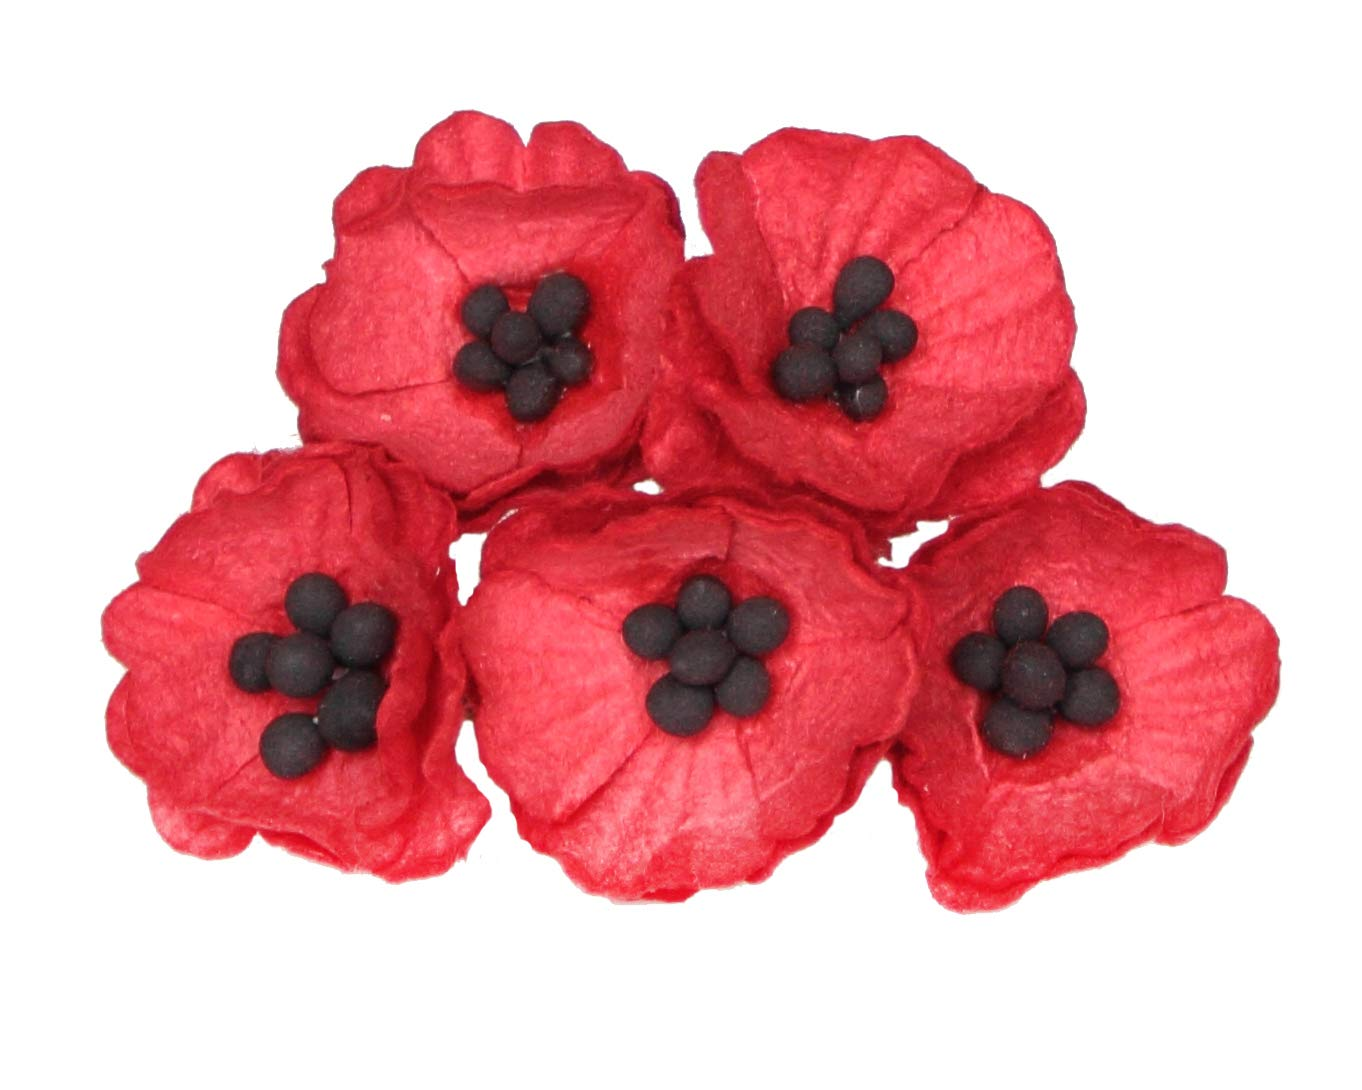 50-red-Paper-Poppy-Flowers-for-Scrapbooking-Veterans-Day-Decoration-by-ScrapFlowers-